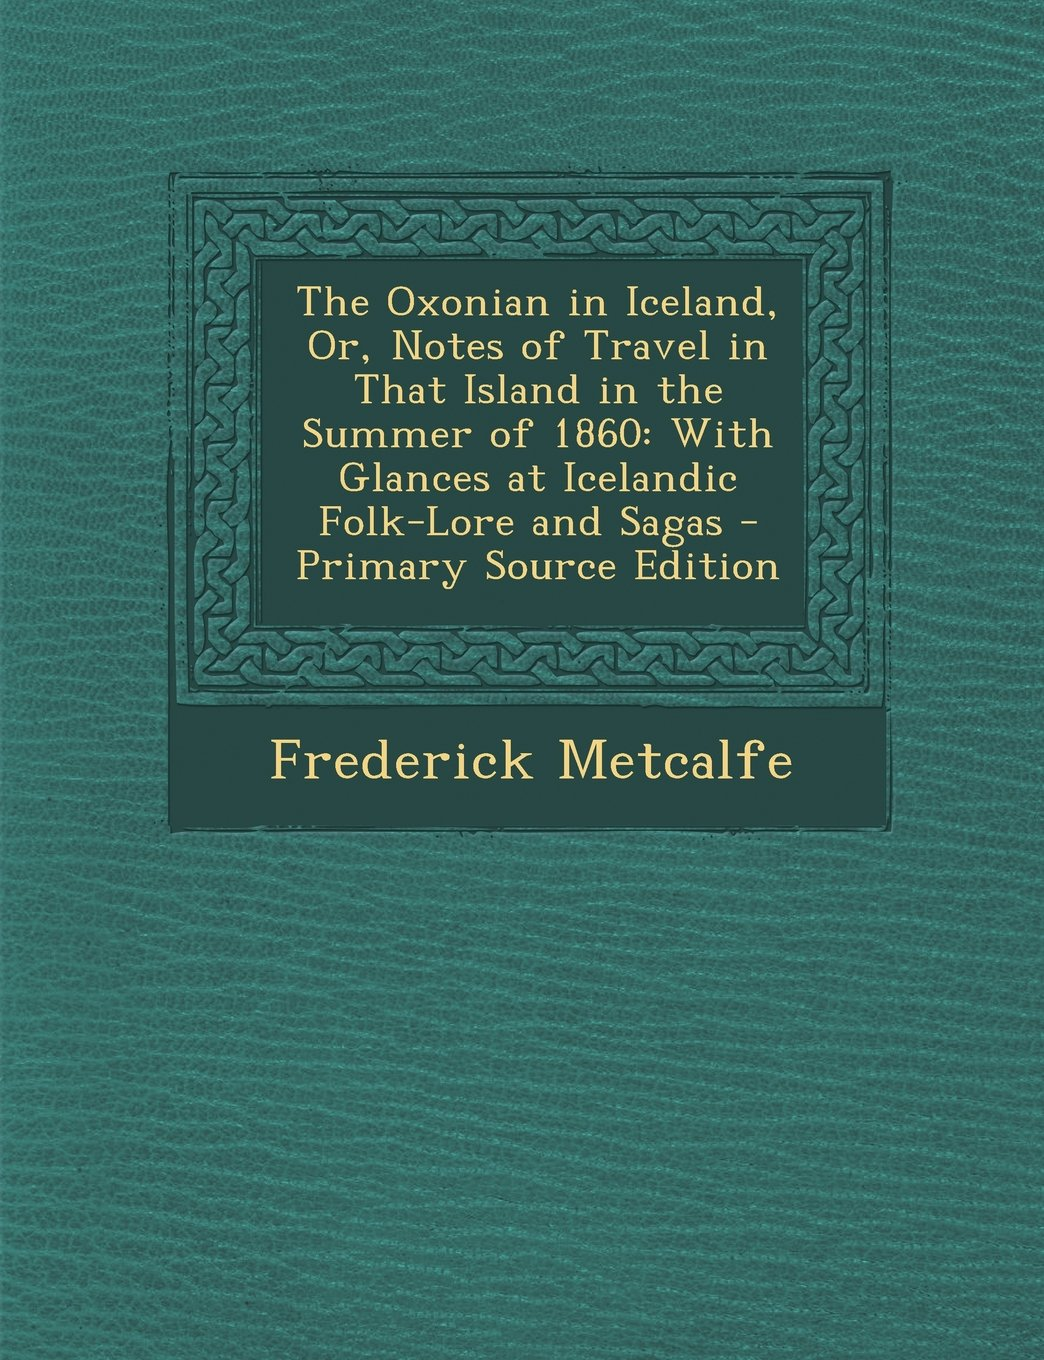 The Oxonian in Iceland, Or, Notes of Travel in That Island in the Summer of 1860: With Glances at Icelandic Folk-Lore and Sagas - Primary Source Edition ebook